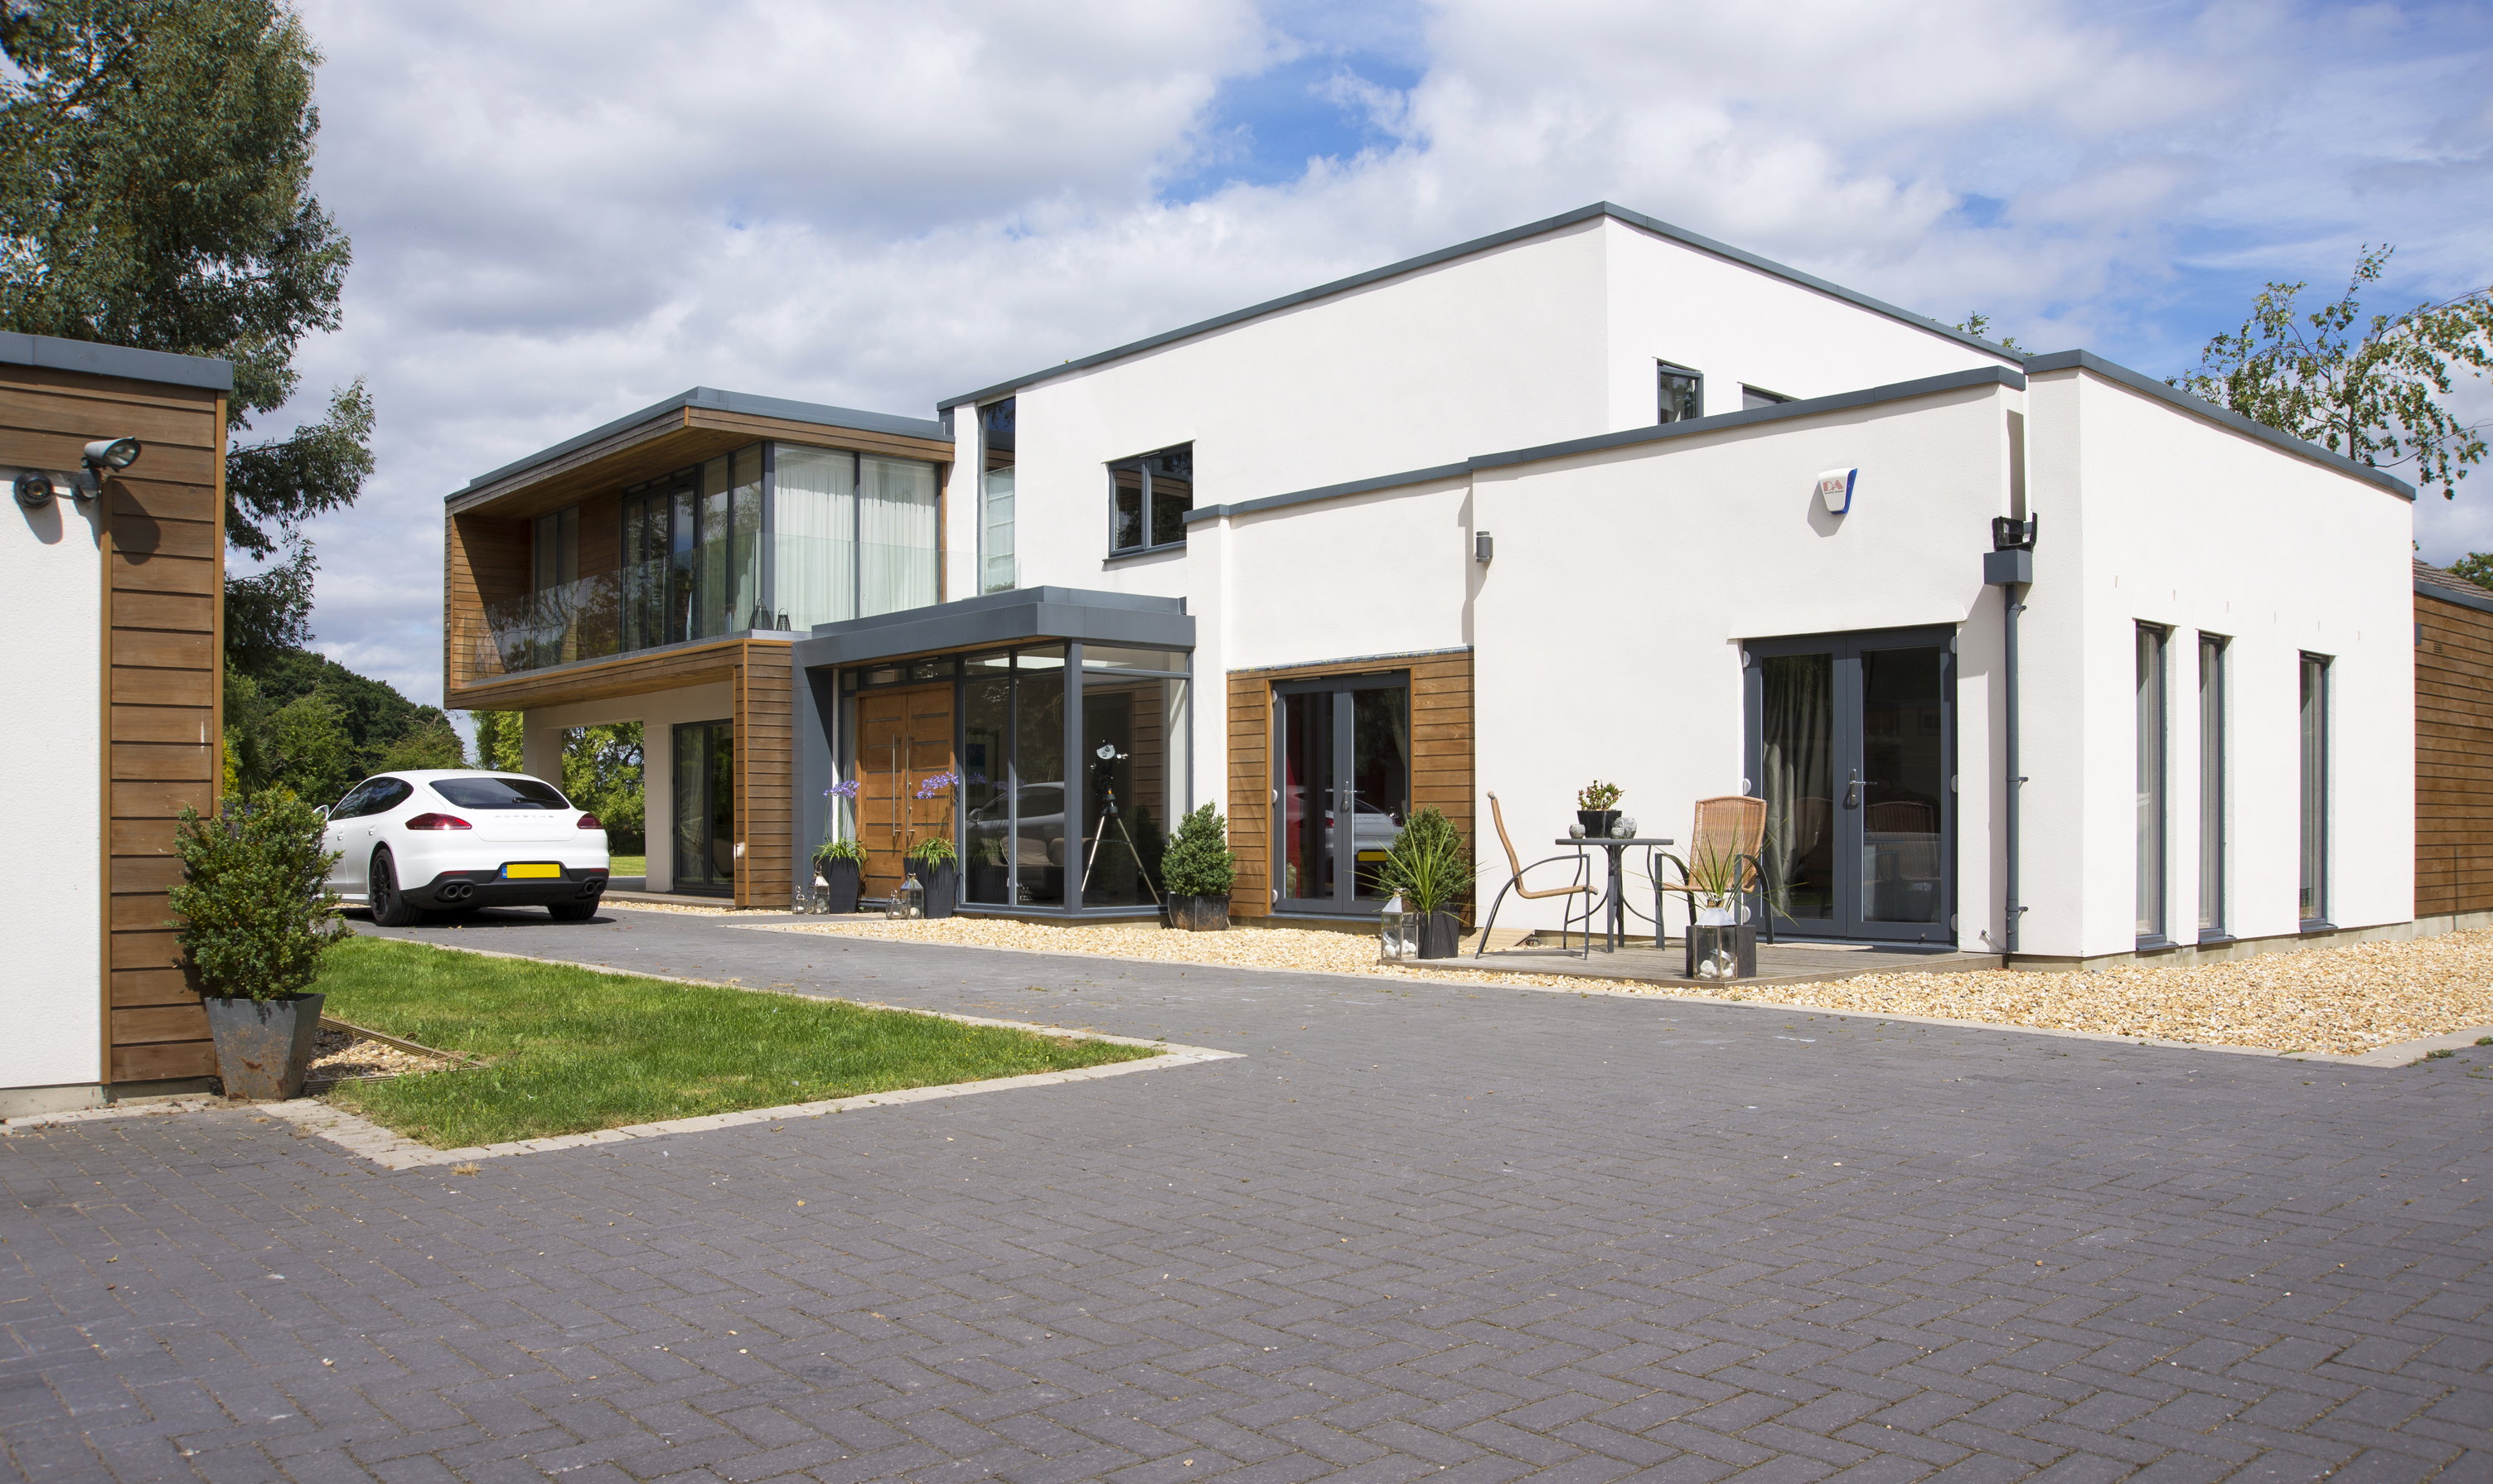 </p> <p>Find your ideal home design pro on designfor-me.com - get matched and see who's interested in your home project. Click image to see more inspiration from our design pros</p> <p>Design by Anthony, architect from Fareham, South East</p> <p>#architecture #homedesign #modernhomes #homeinspiration #selfbuilds #selfbuildinspiration #selfbuildideas #granddesigns </p> <p>